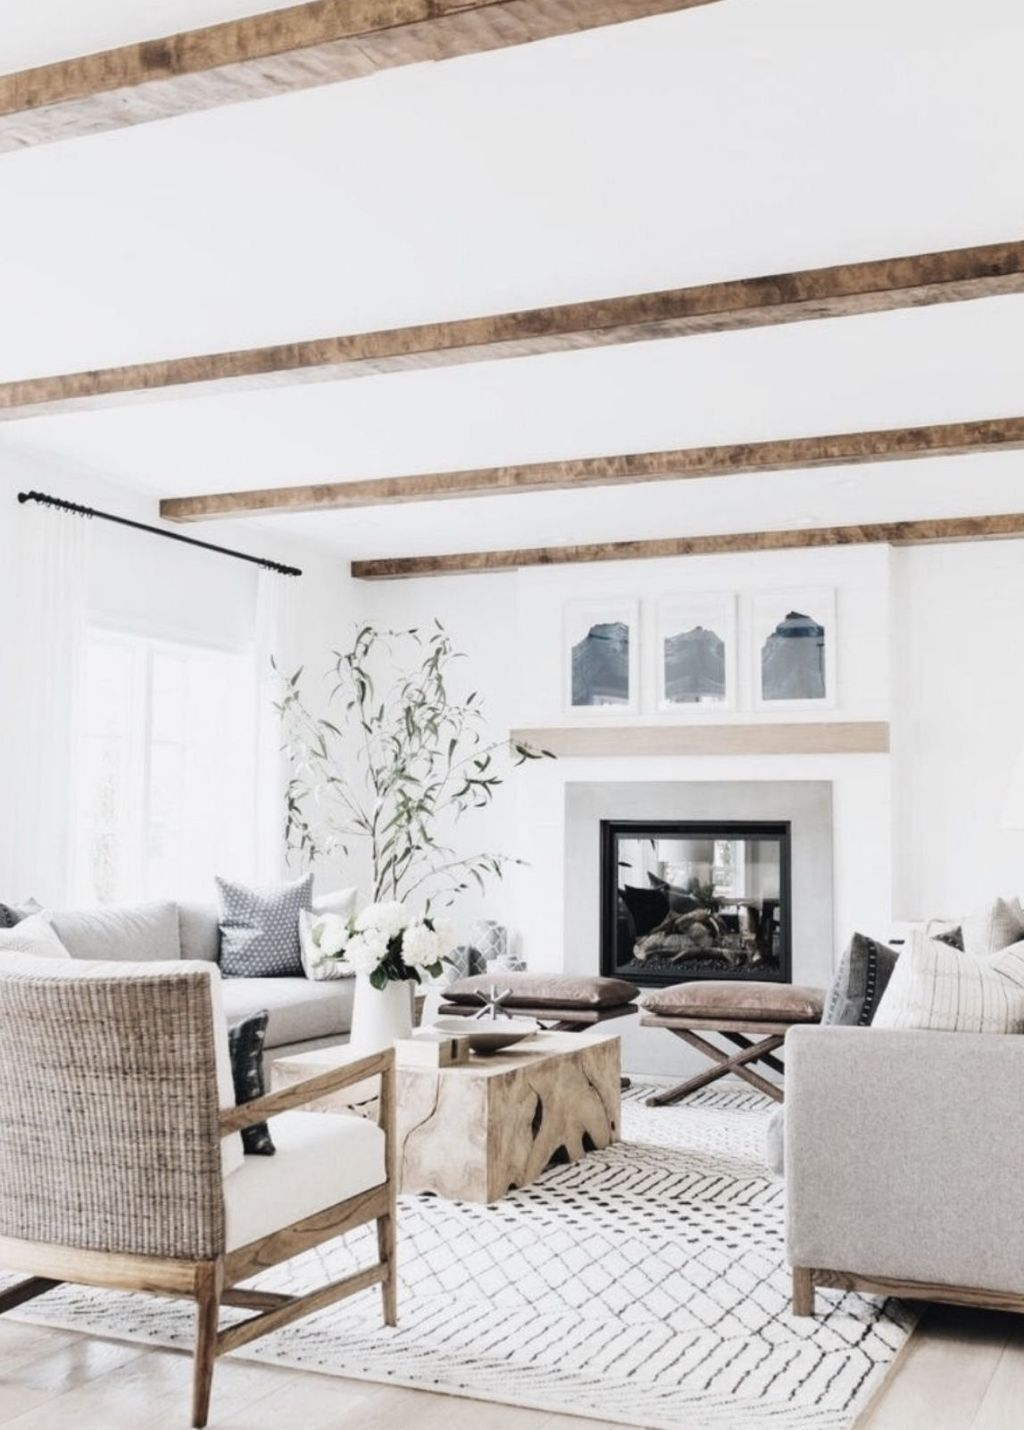 47 Awesome Modern Farmhouse Style Decoration Ideas For Your Living Room #livingroom #livingroomideas #livingroomdecor #modernfarmhouselivingroom